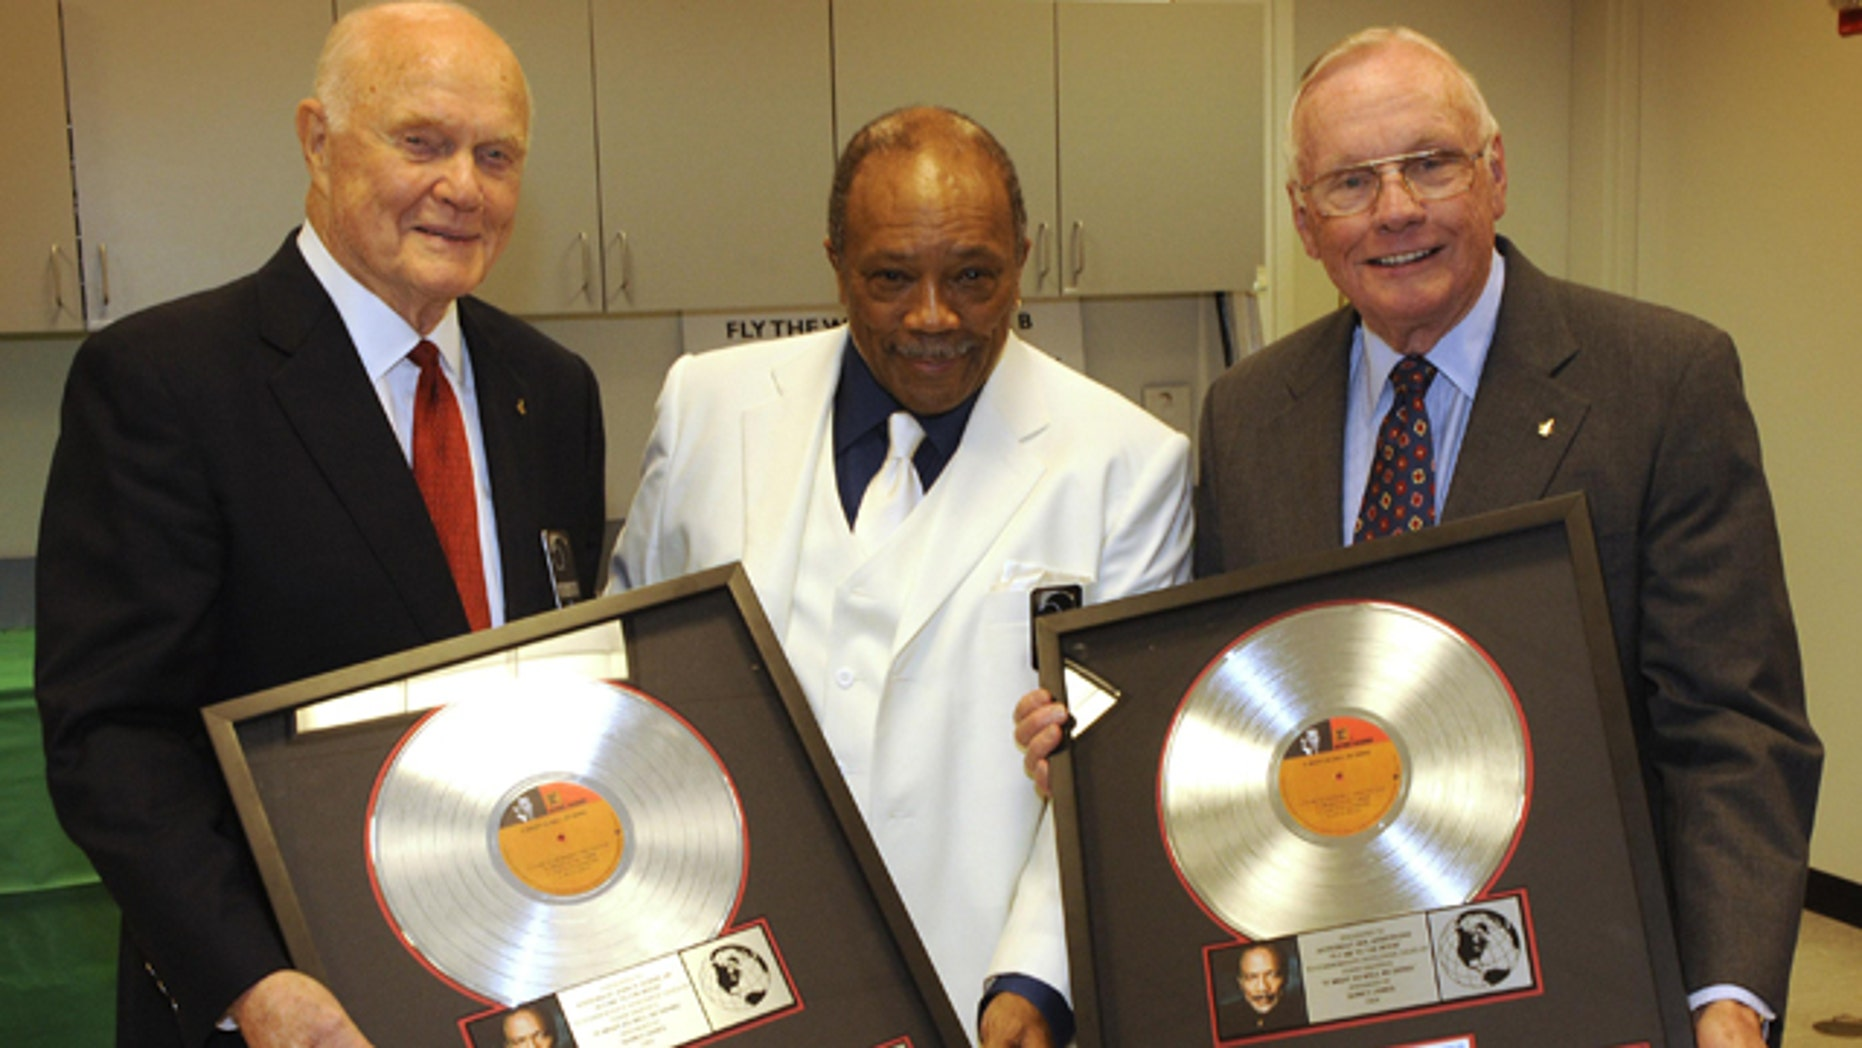 """Grammy Award-winning producer Quincy Jones (center) presented a platinum copy of """"Fly Me to the Moon"""" to Senator John Glenn (left) and Apollo 11 Commander Neil Armstrong (right) during NASA's 50th anniversary gala in 2008."""